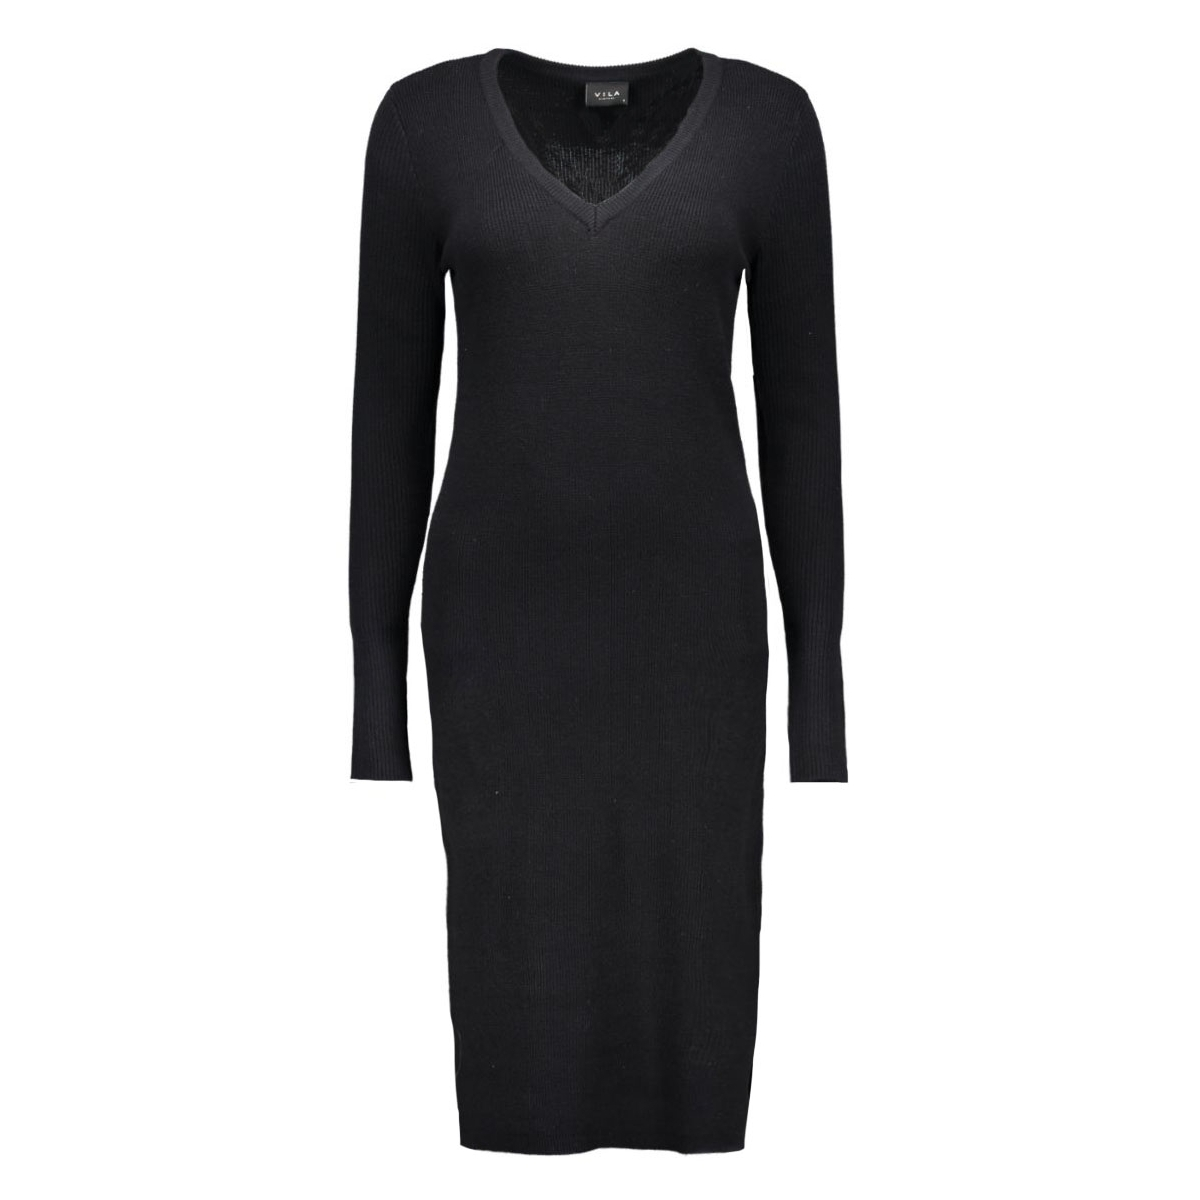 viandrea  l/s knit dress 14037958 vila jurk black